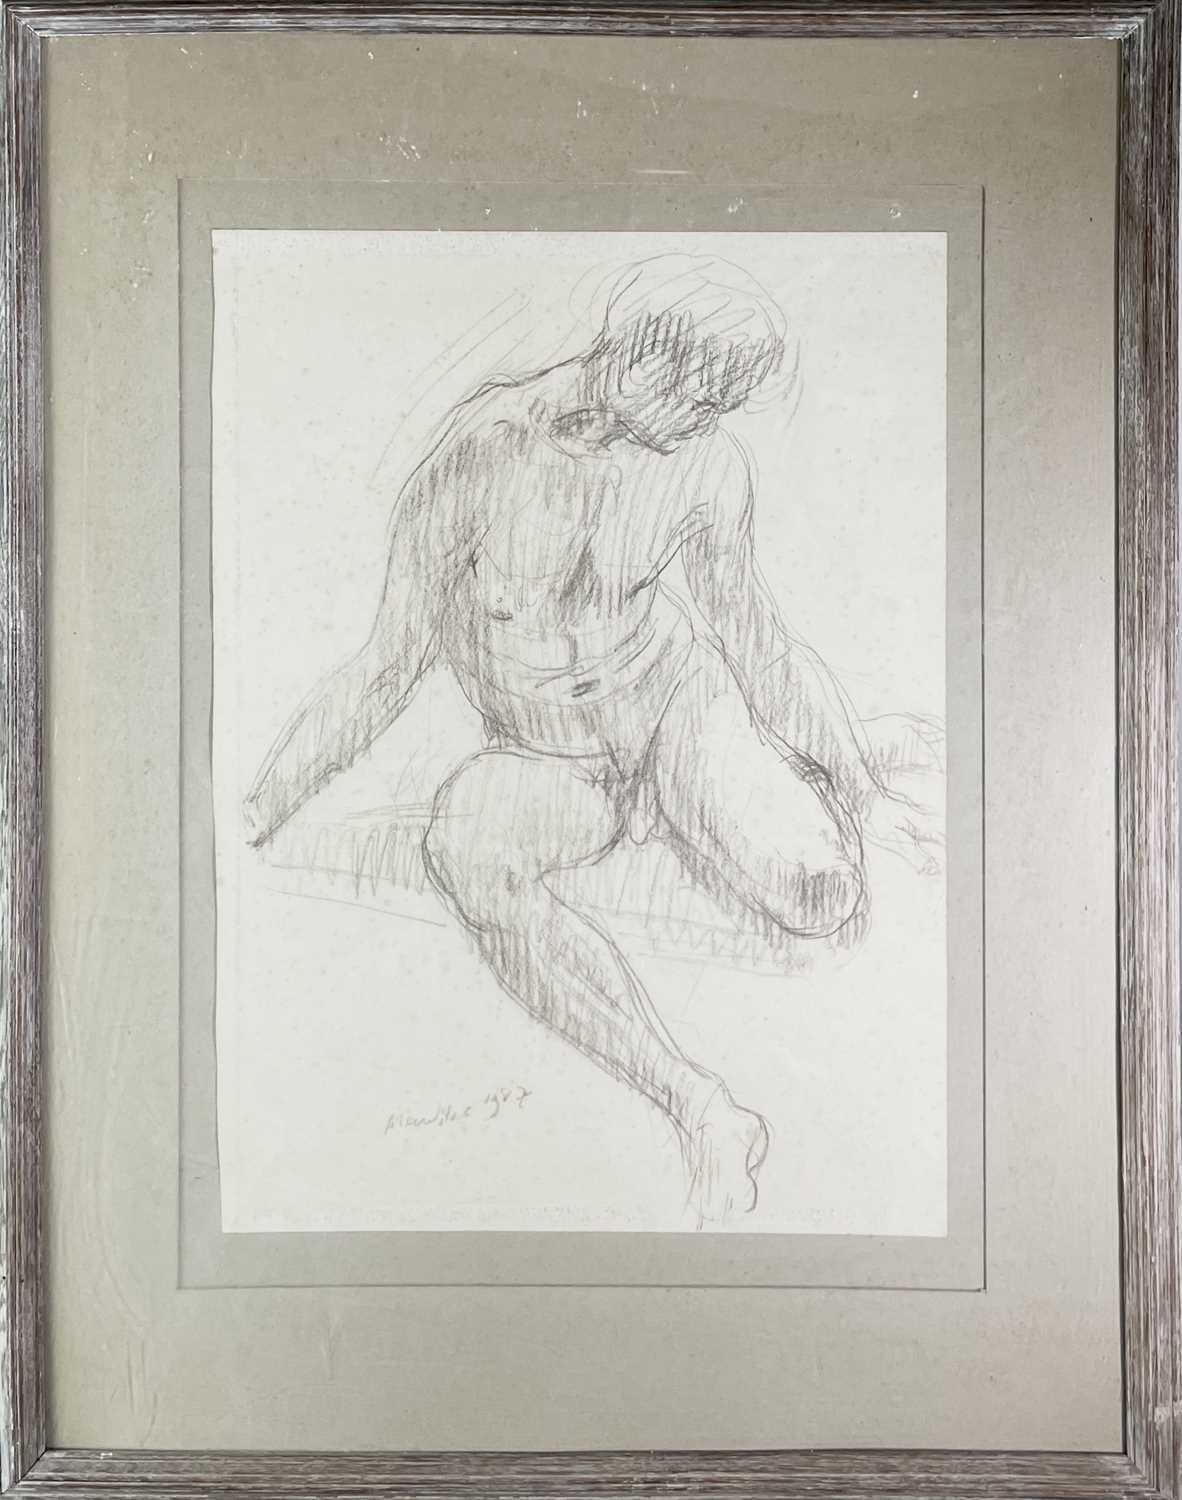 Alec WILES (1924) Seated Male Nude Charcoal Signed and dated 1987 59x43cm - Image 3 of 3